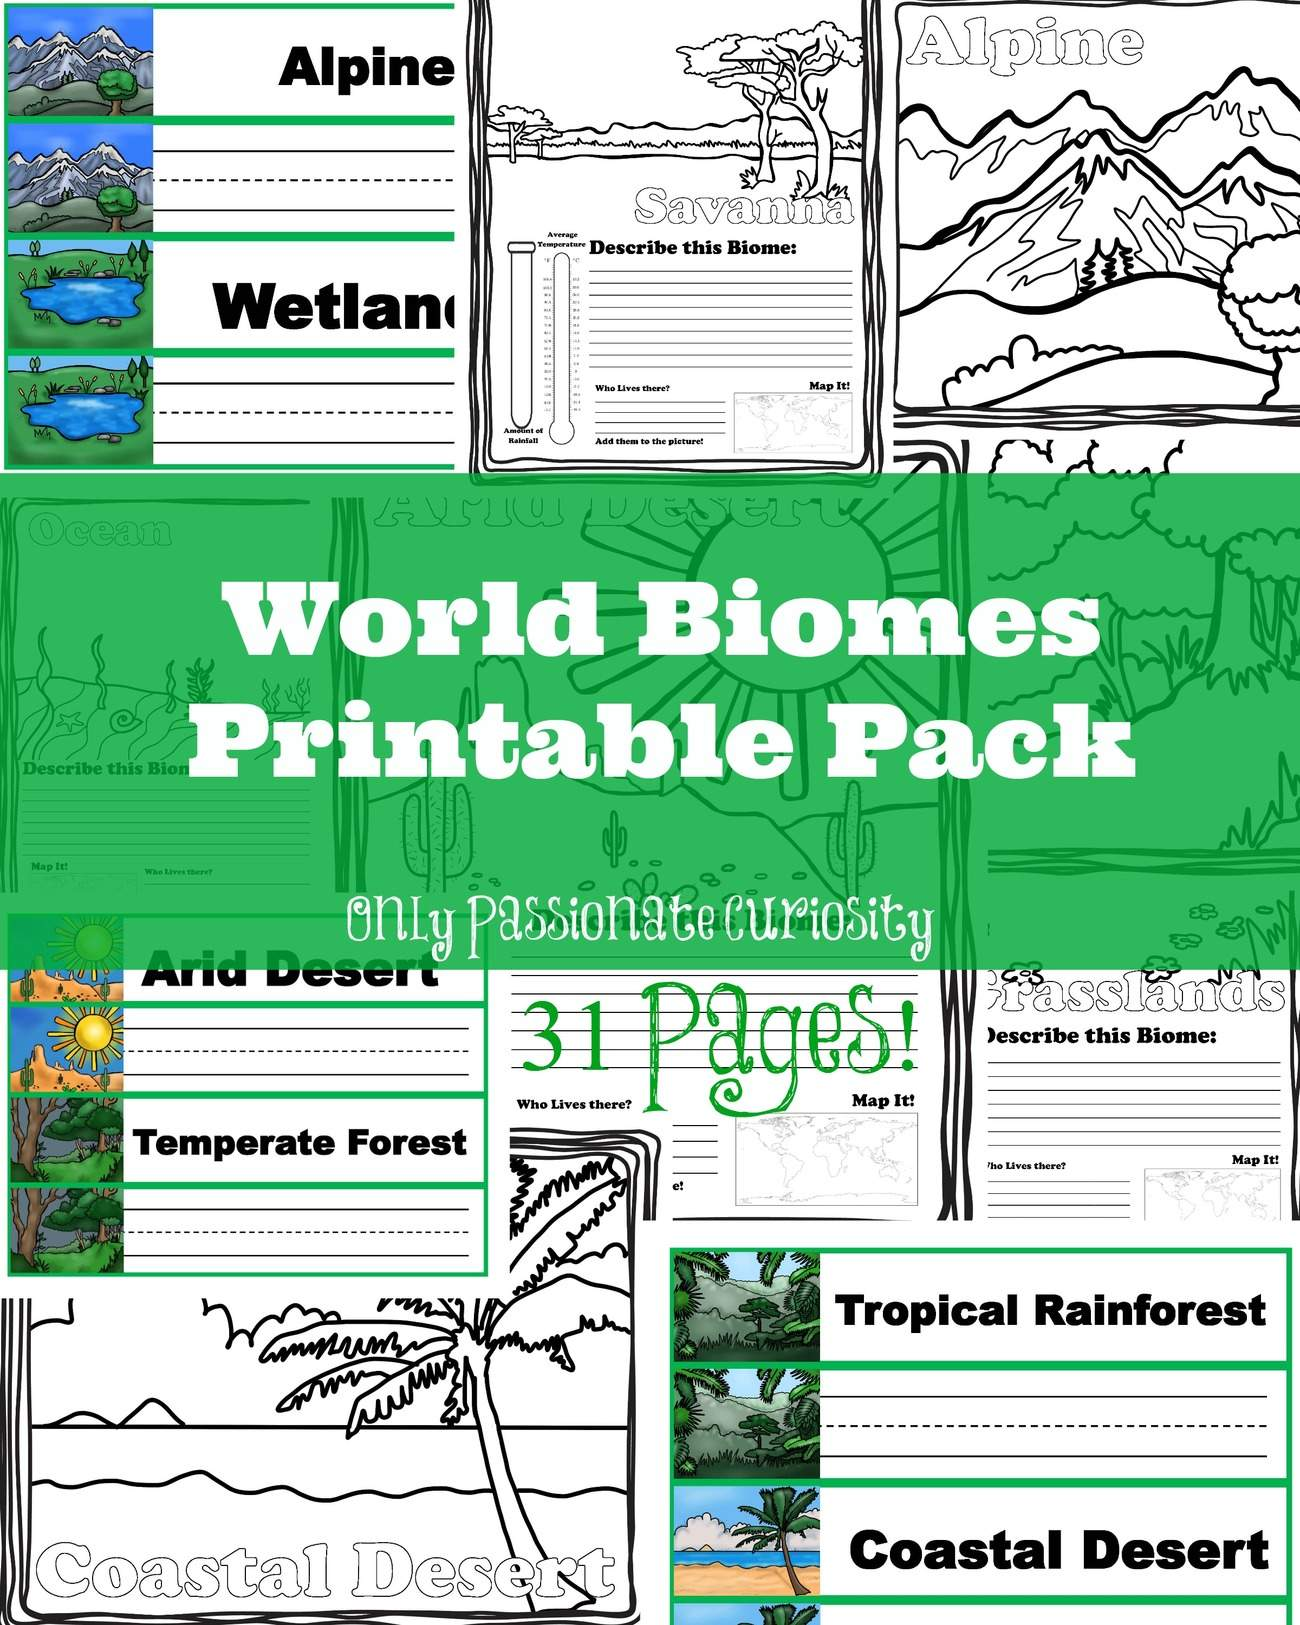 Learning About World Biomes - Only Passionate Curiosity